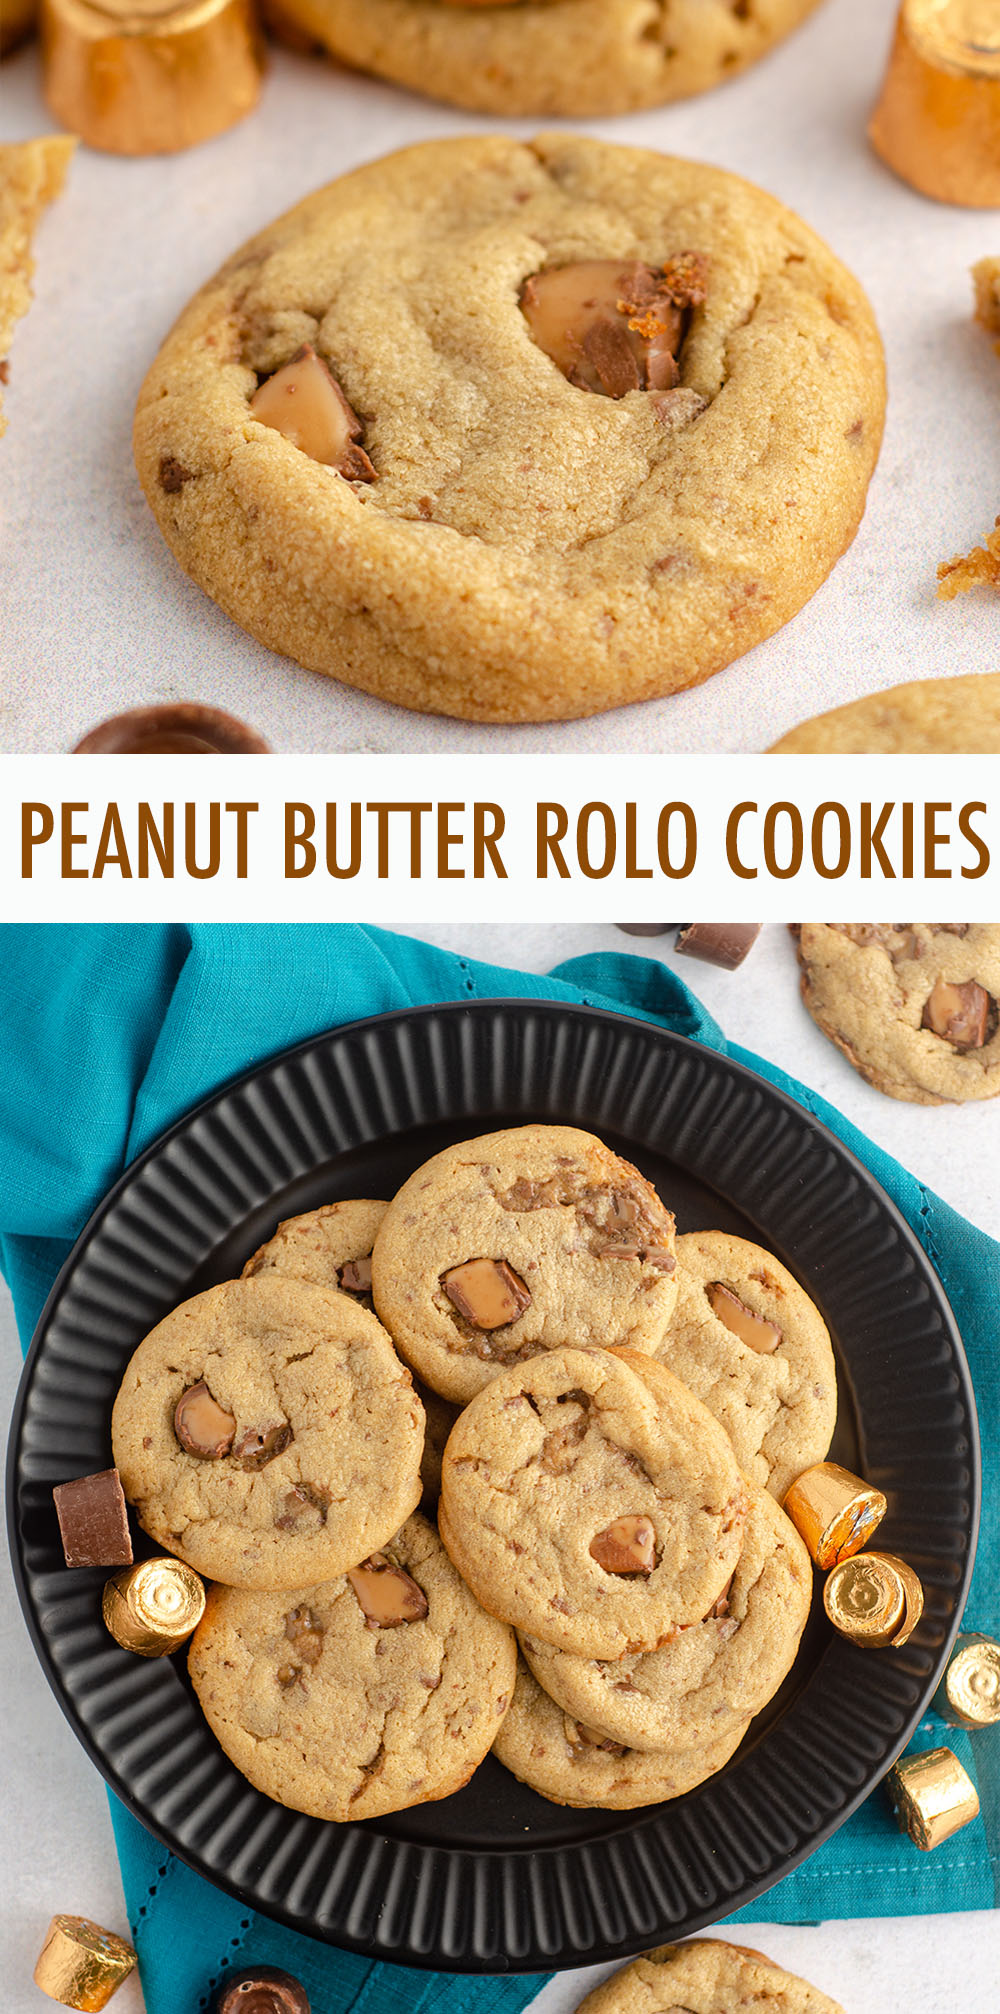 Soft and chewy peanut butter cookies filled with chopped Rolos.